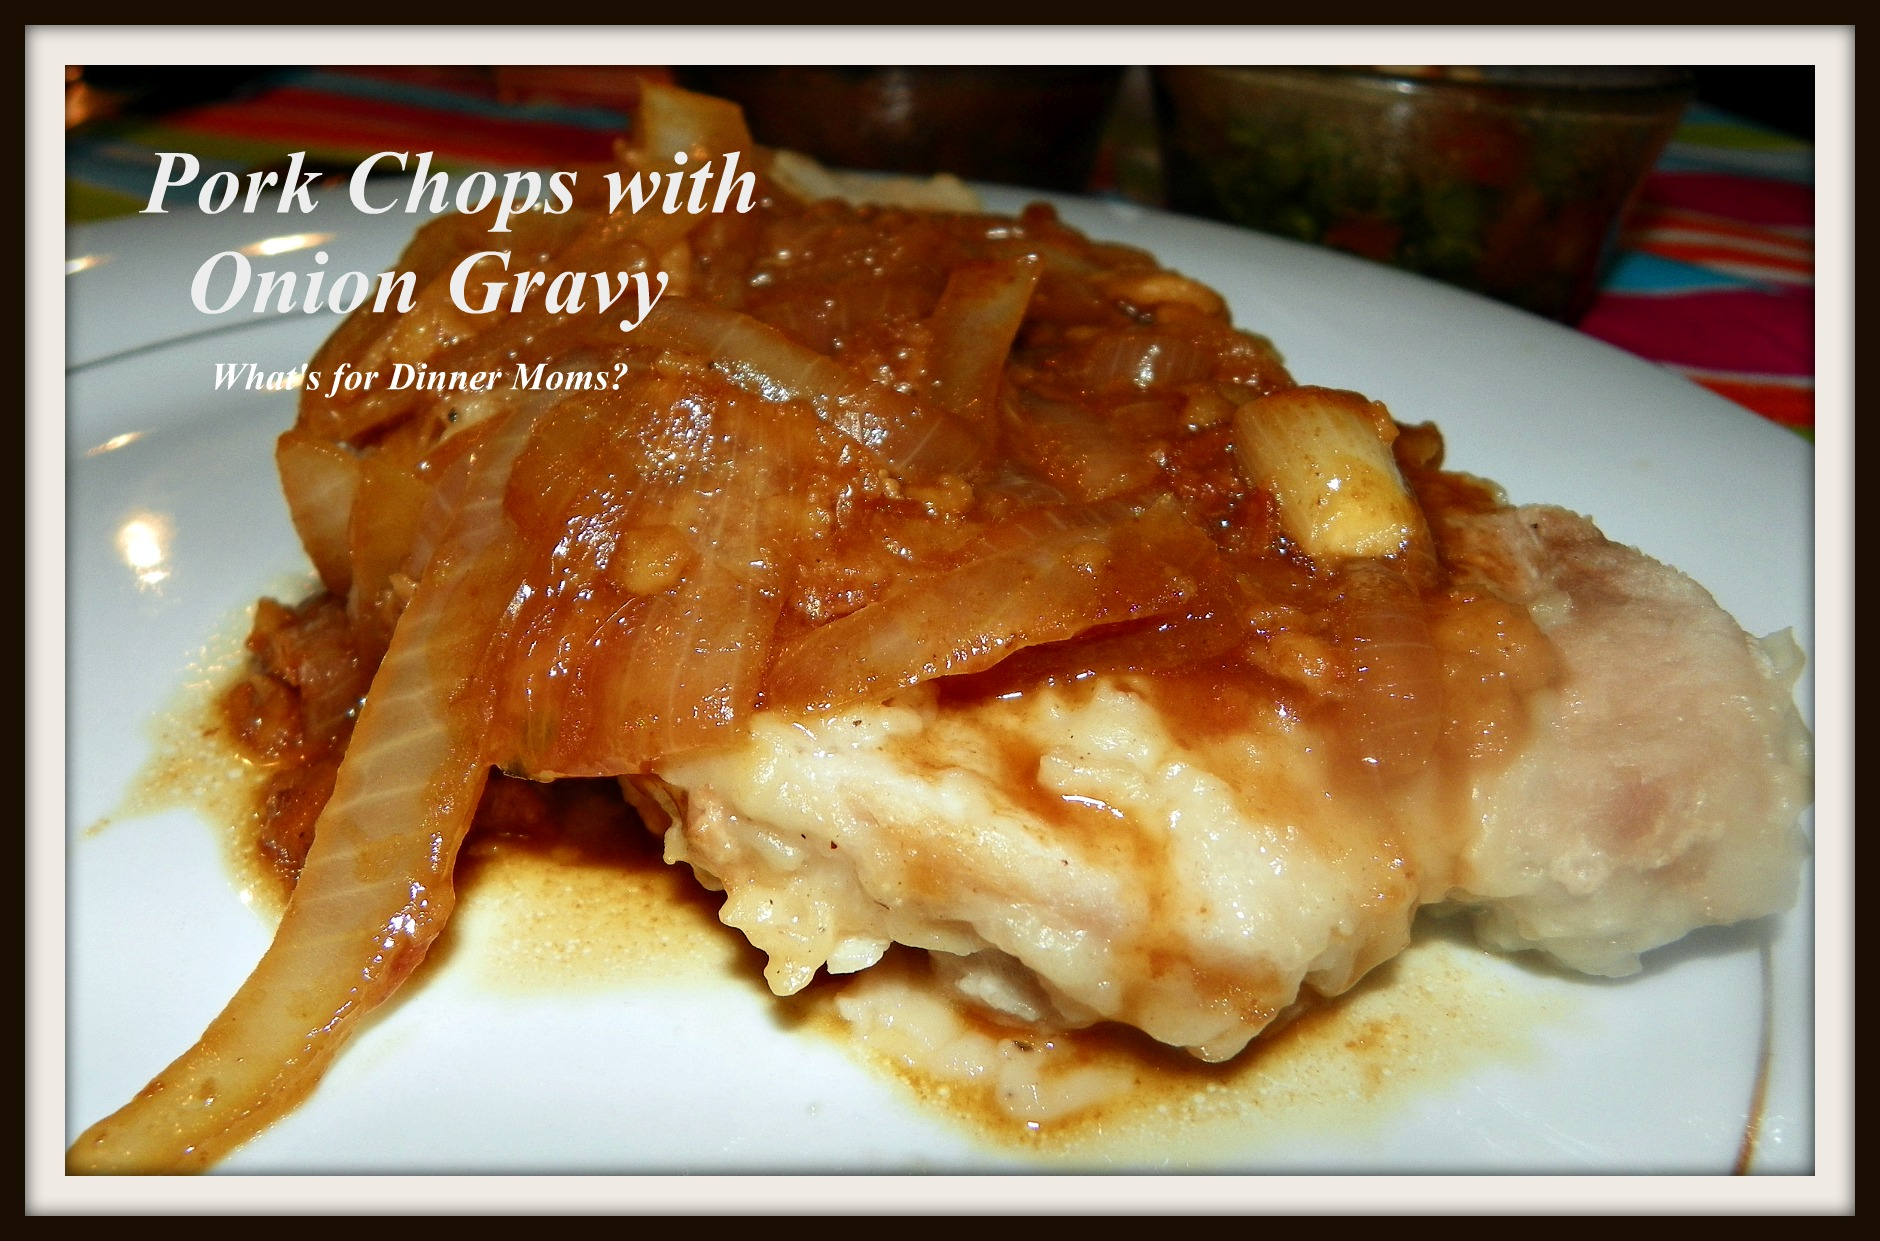 Pork Chops with Onion Gravy | What's for Dinner Moms?